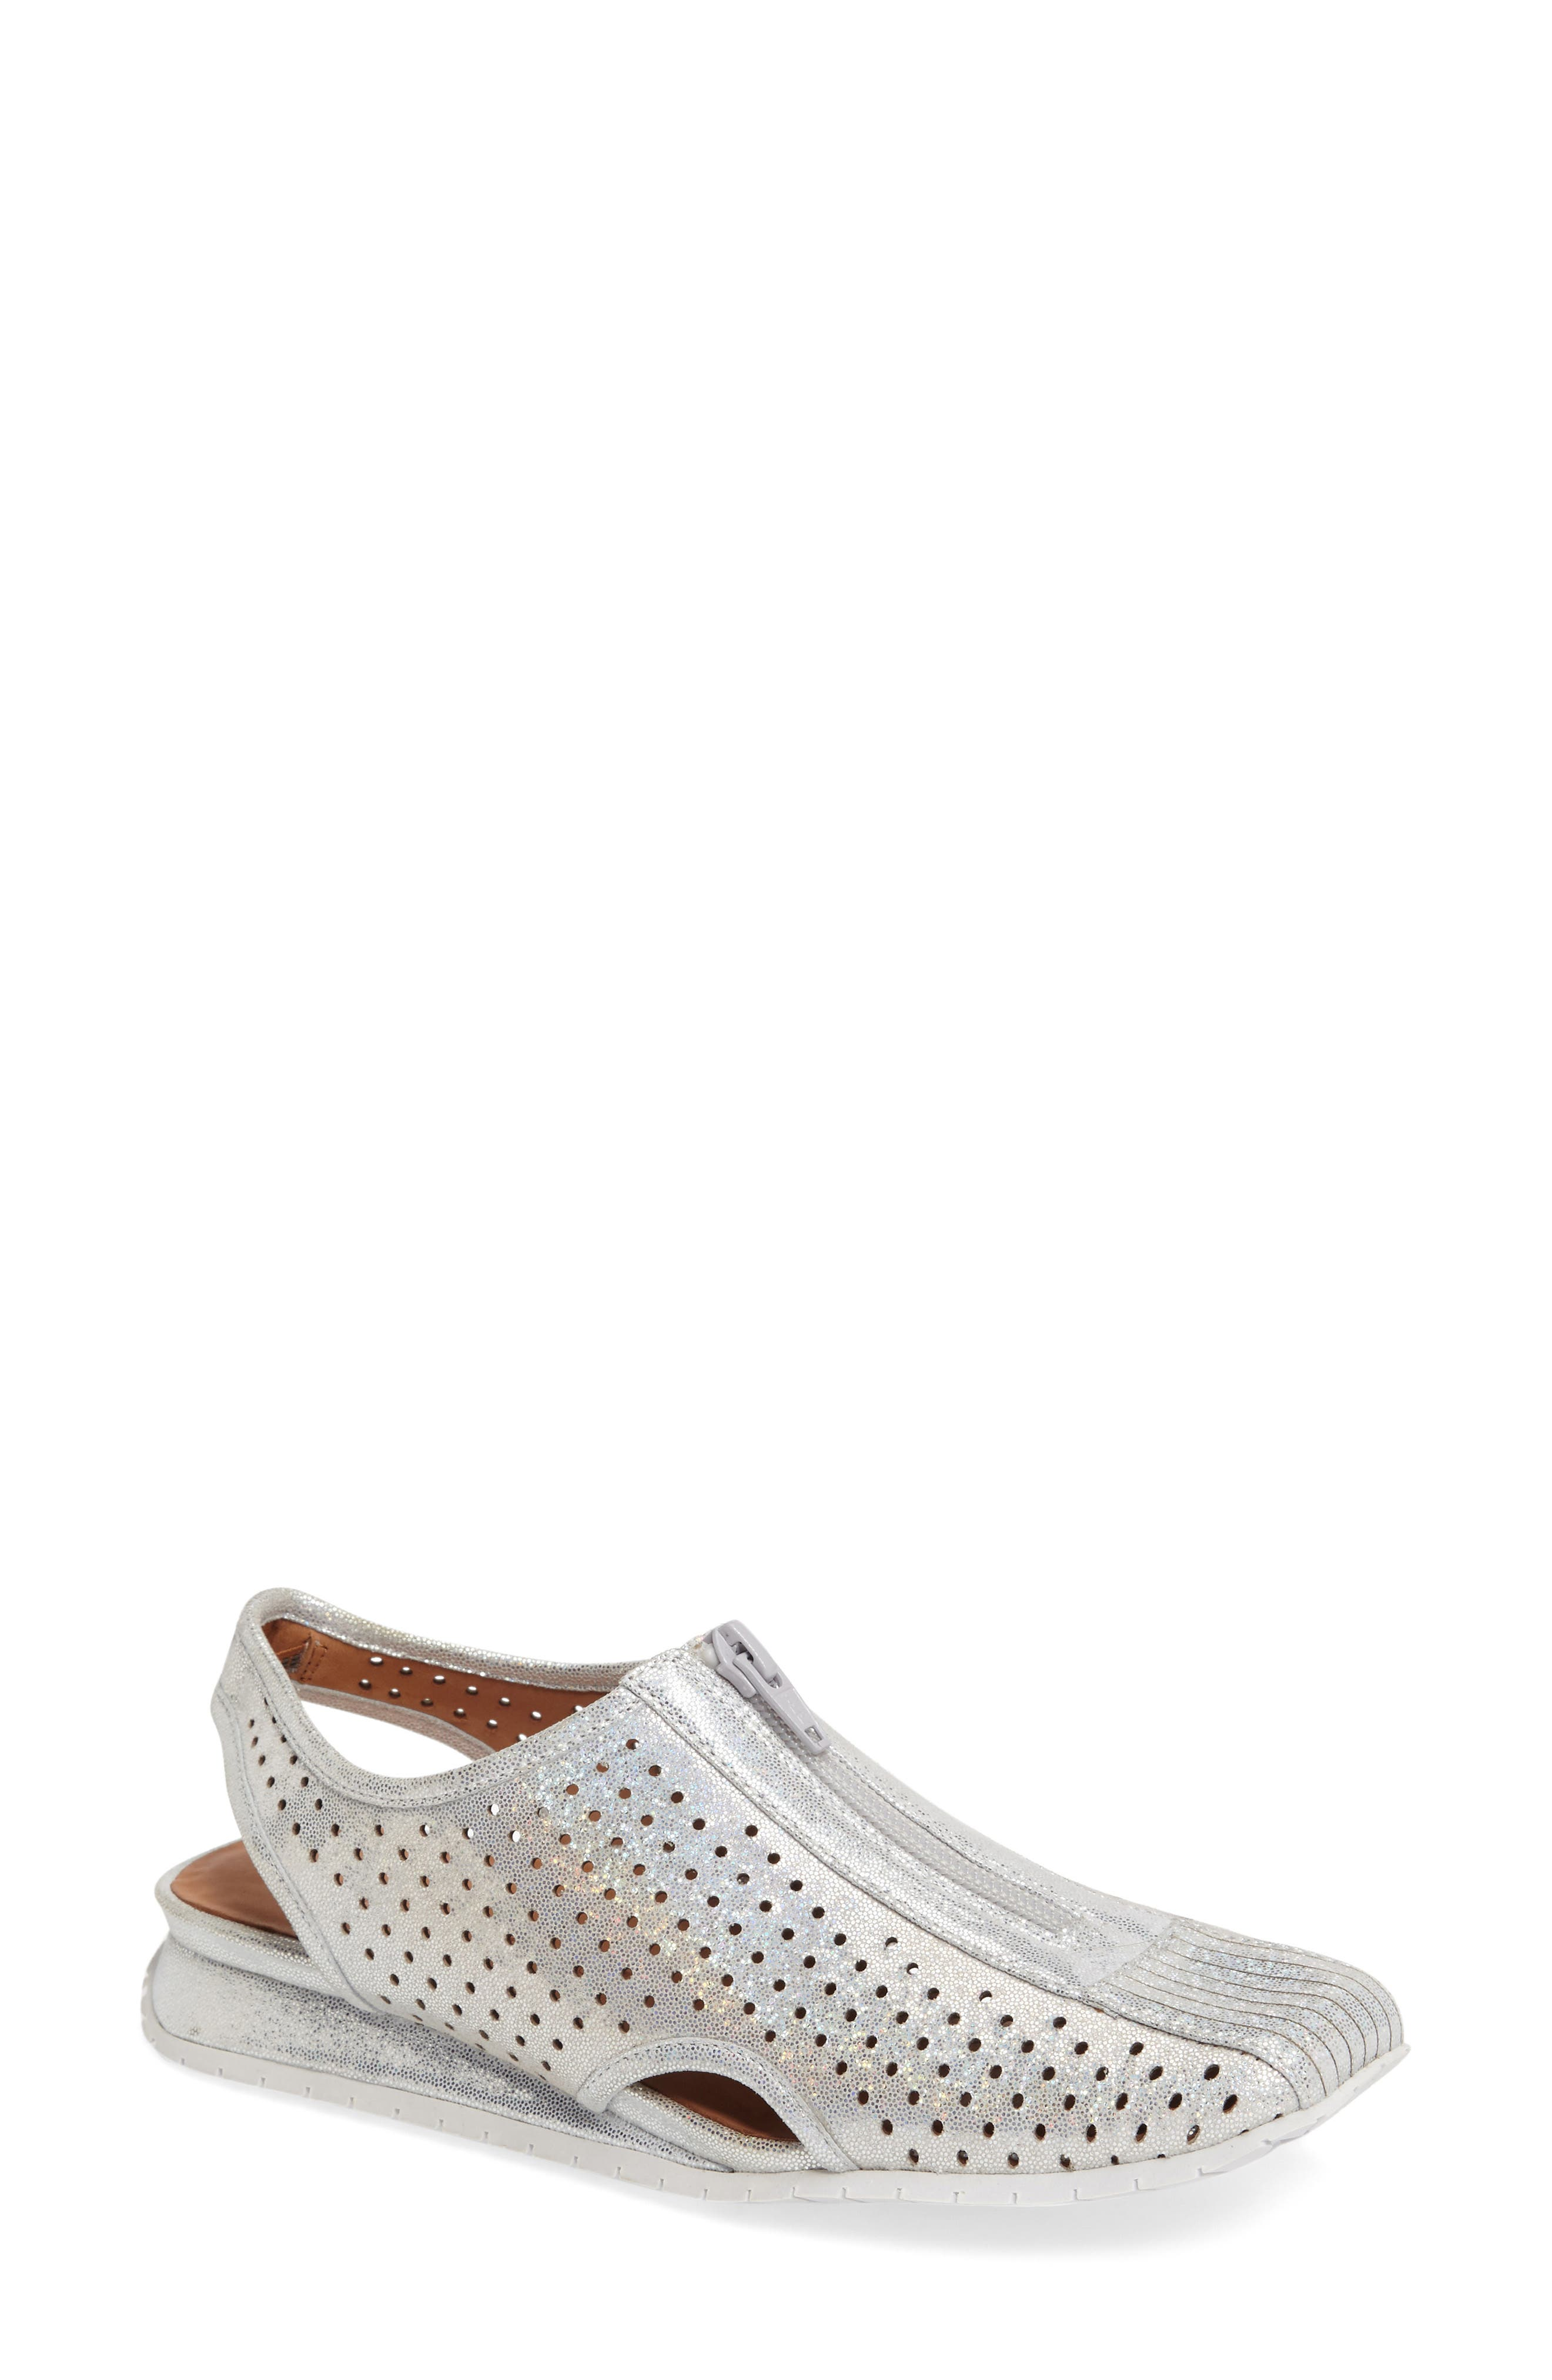 L'AMOUR DES PIEDS Trintino Perforated Slingback Flat